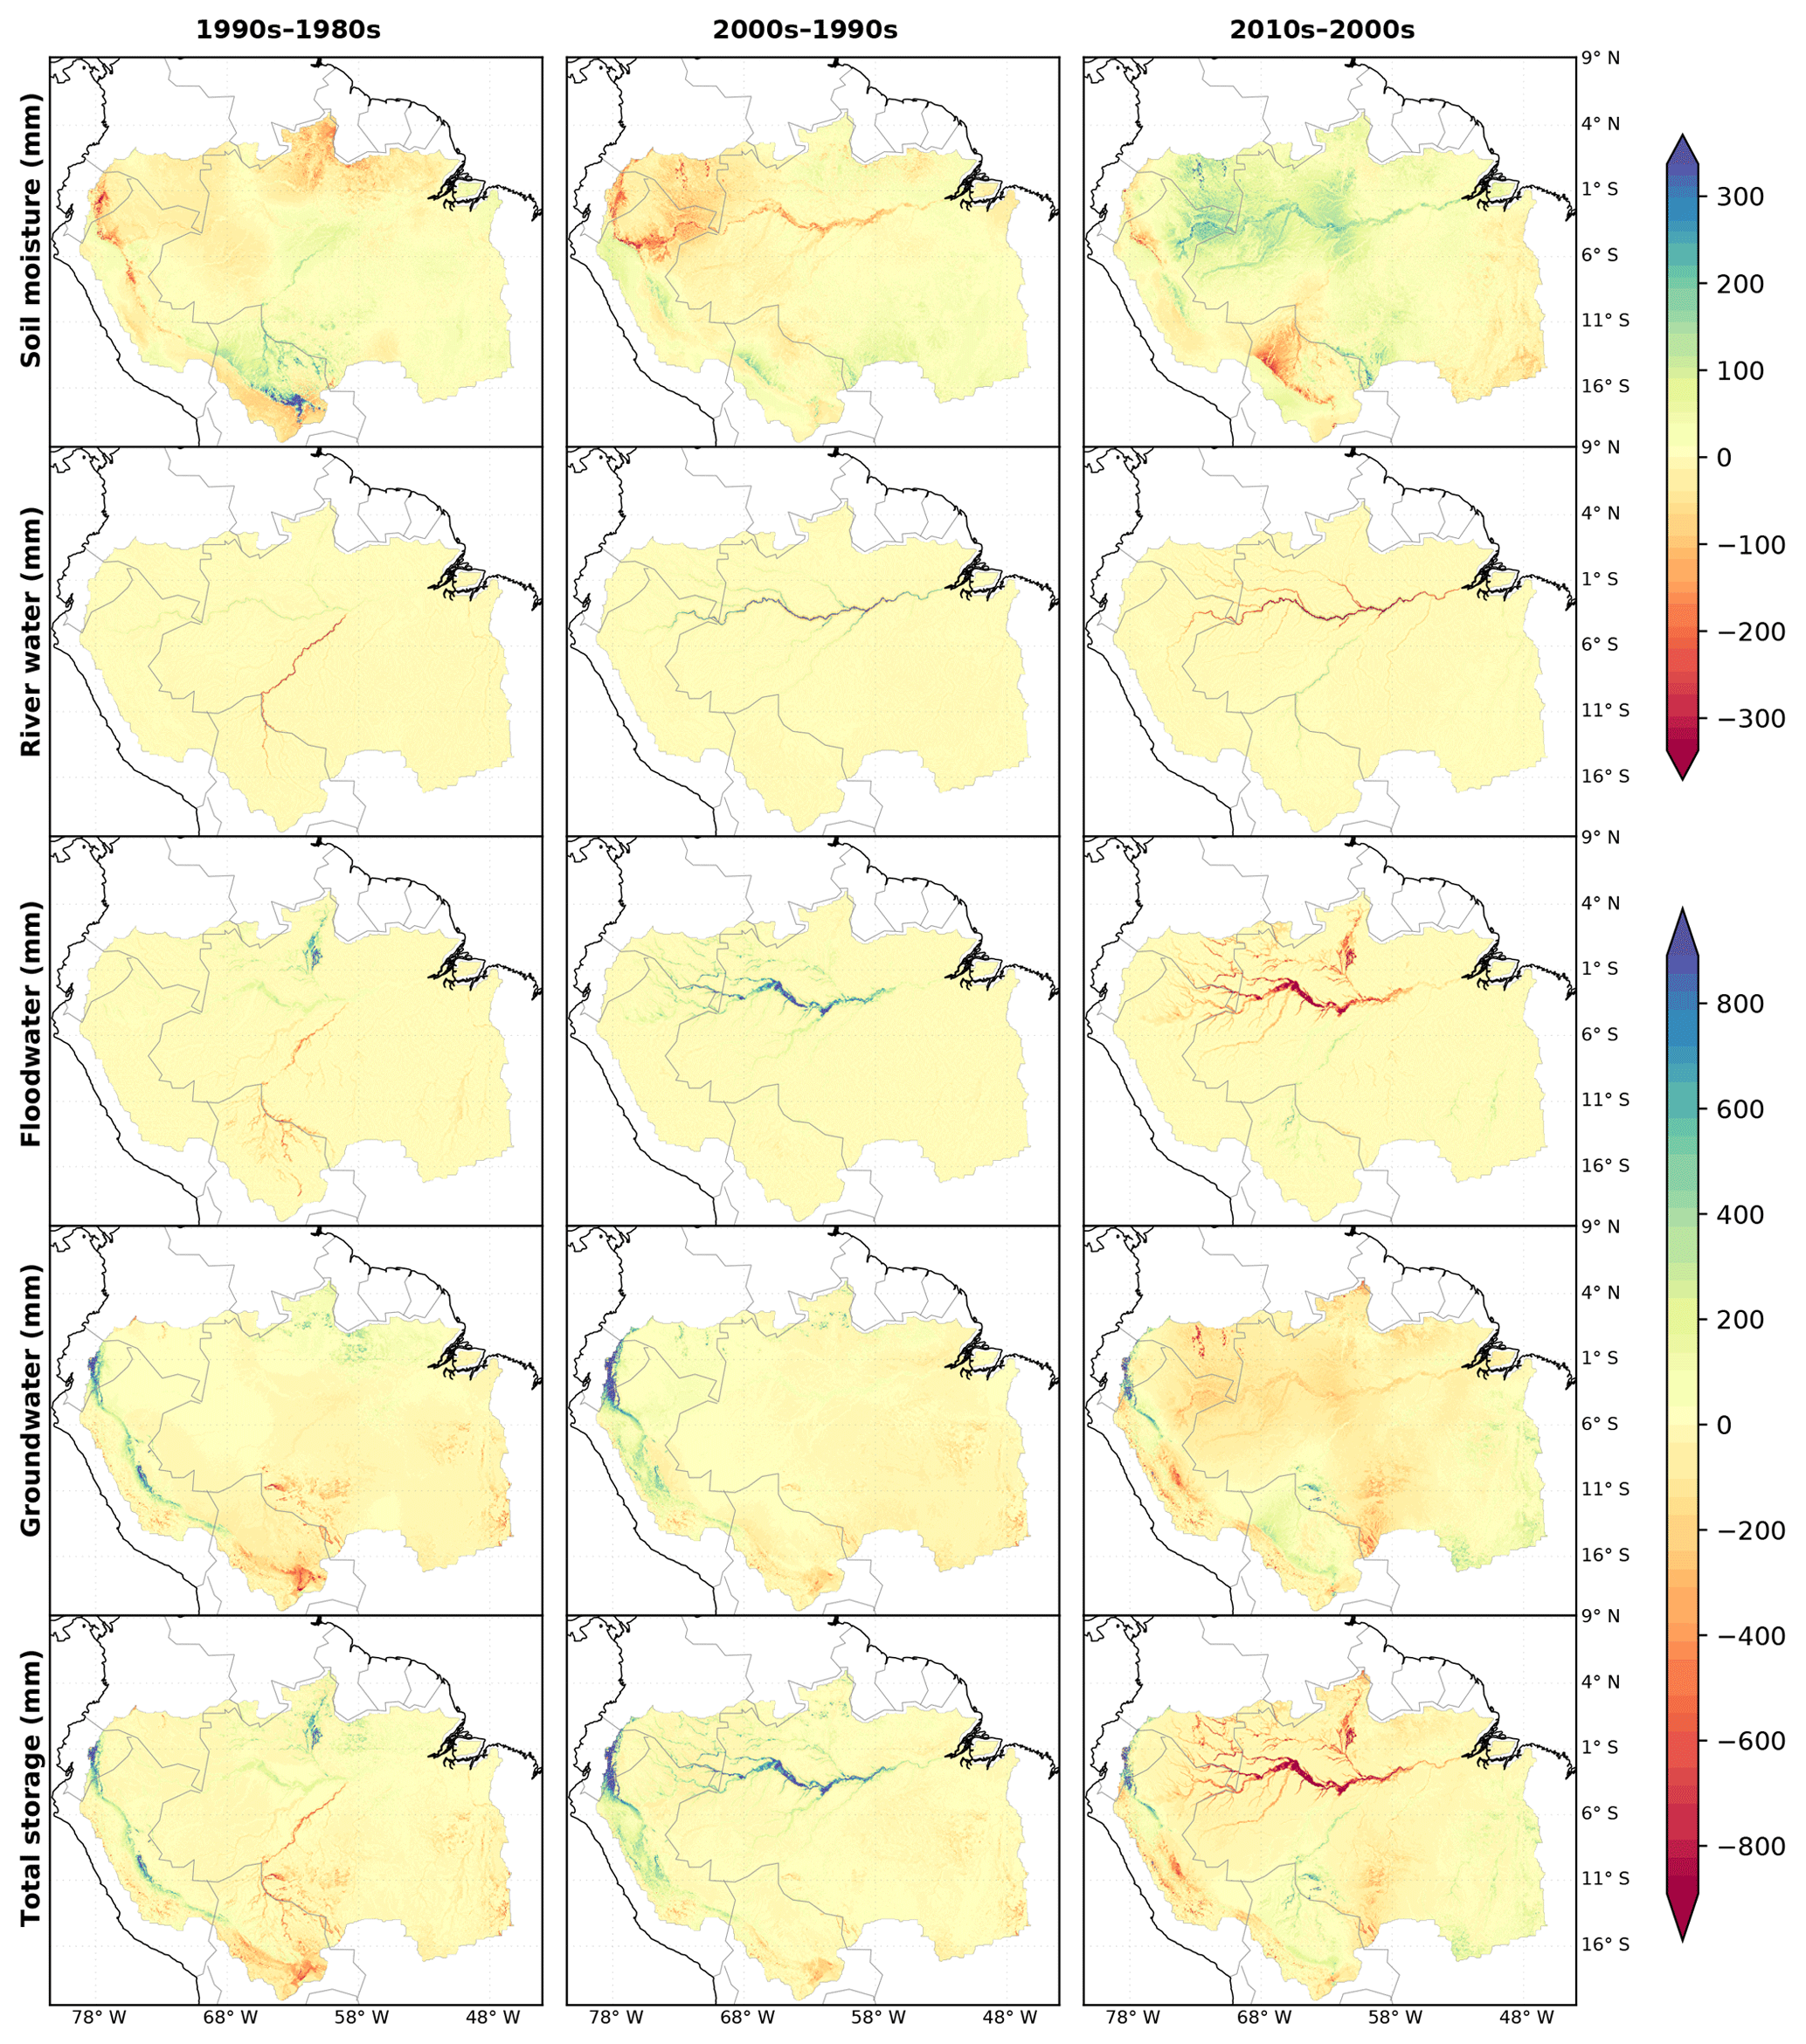 HESS - Multi-decadal hydrologic change and variability in